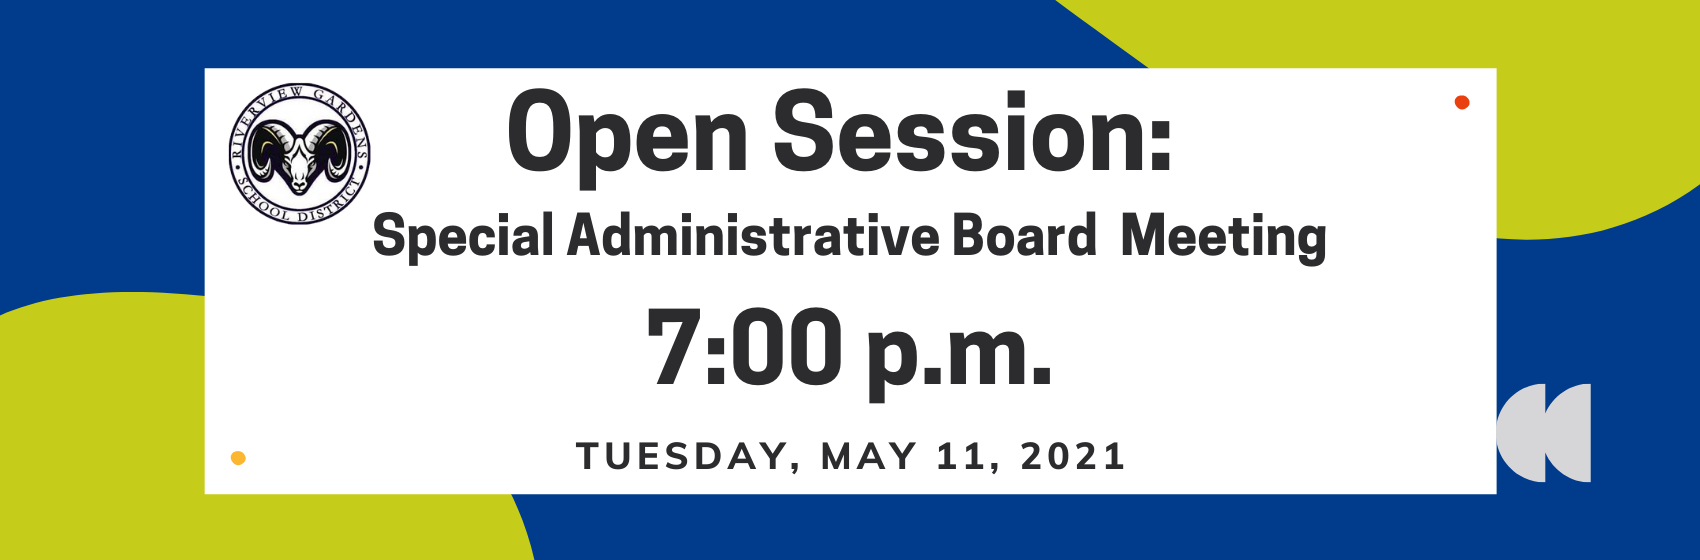 Special Administrative Board Meeting: Open Session 5-11-21